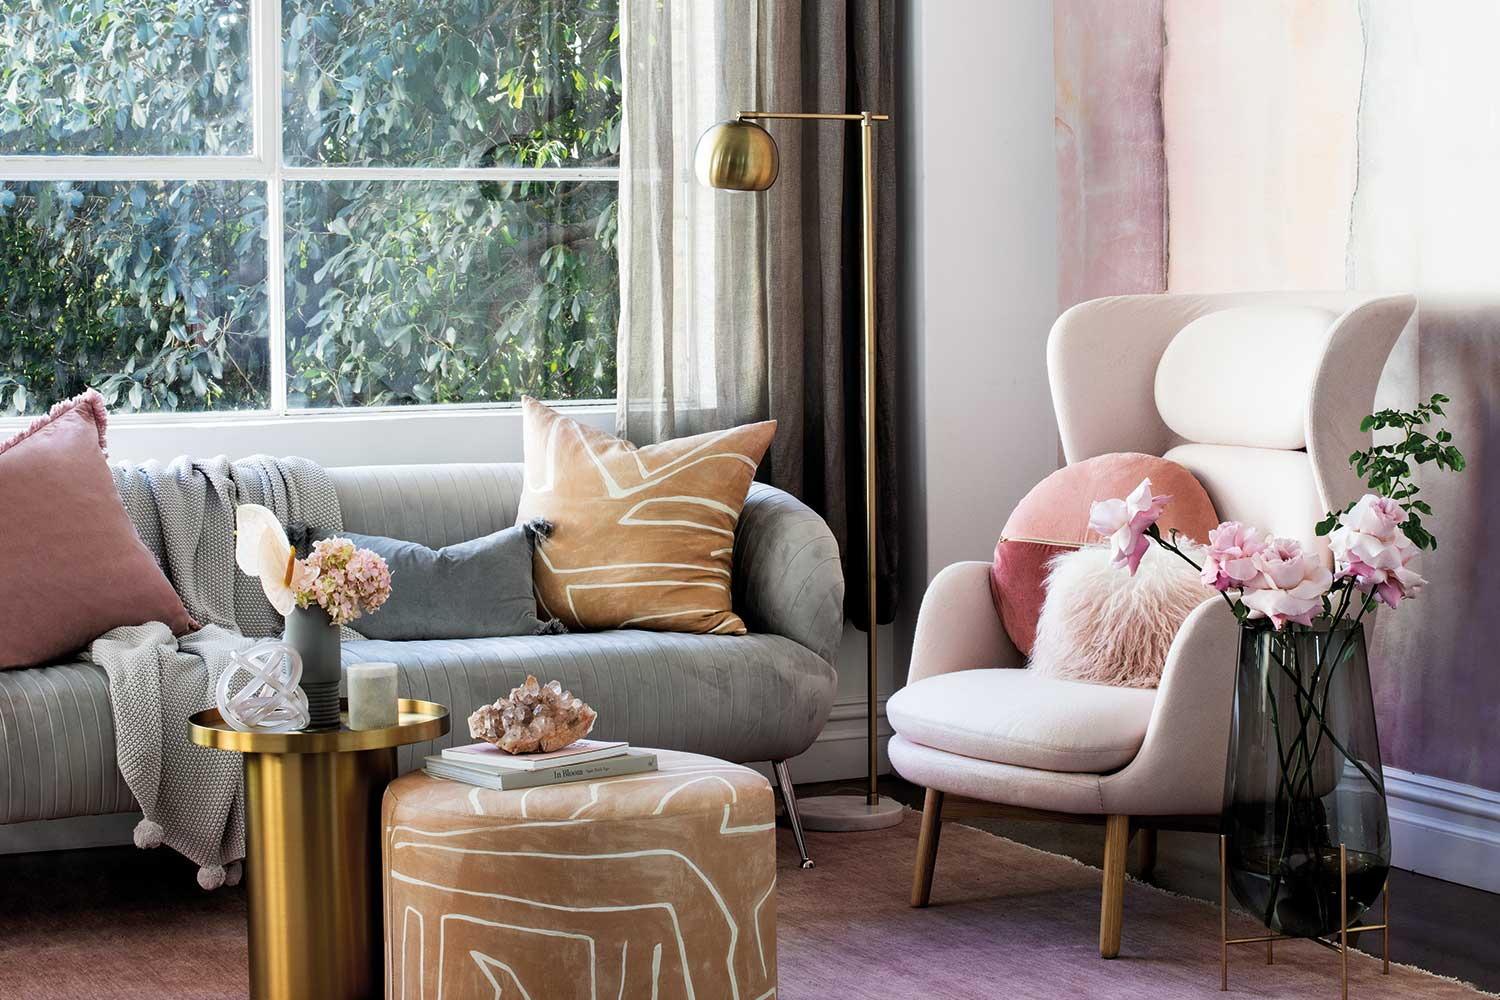 Hottest decorating trends for 2019 part 3 refined romance - Interior design trends 2019 ...